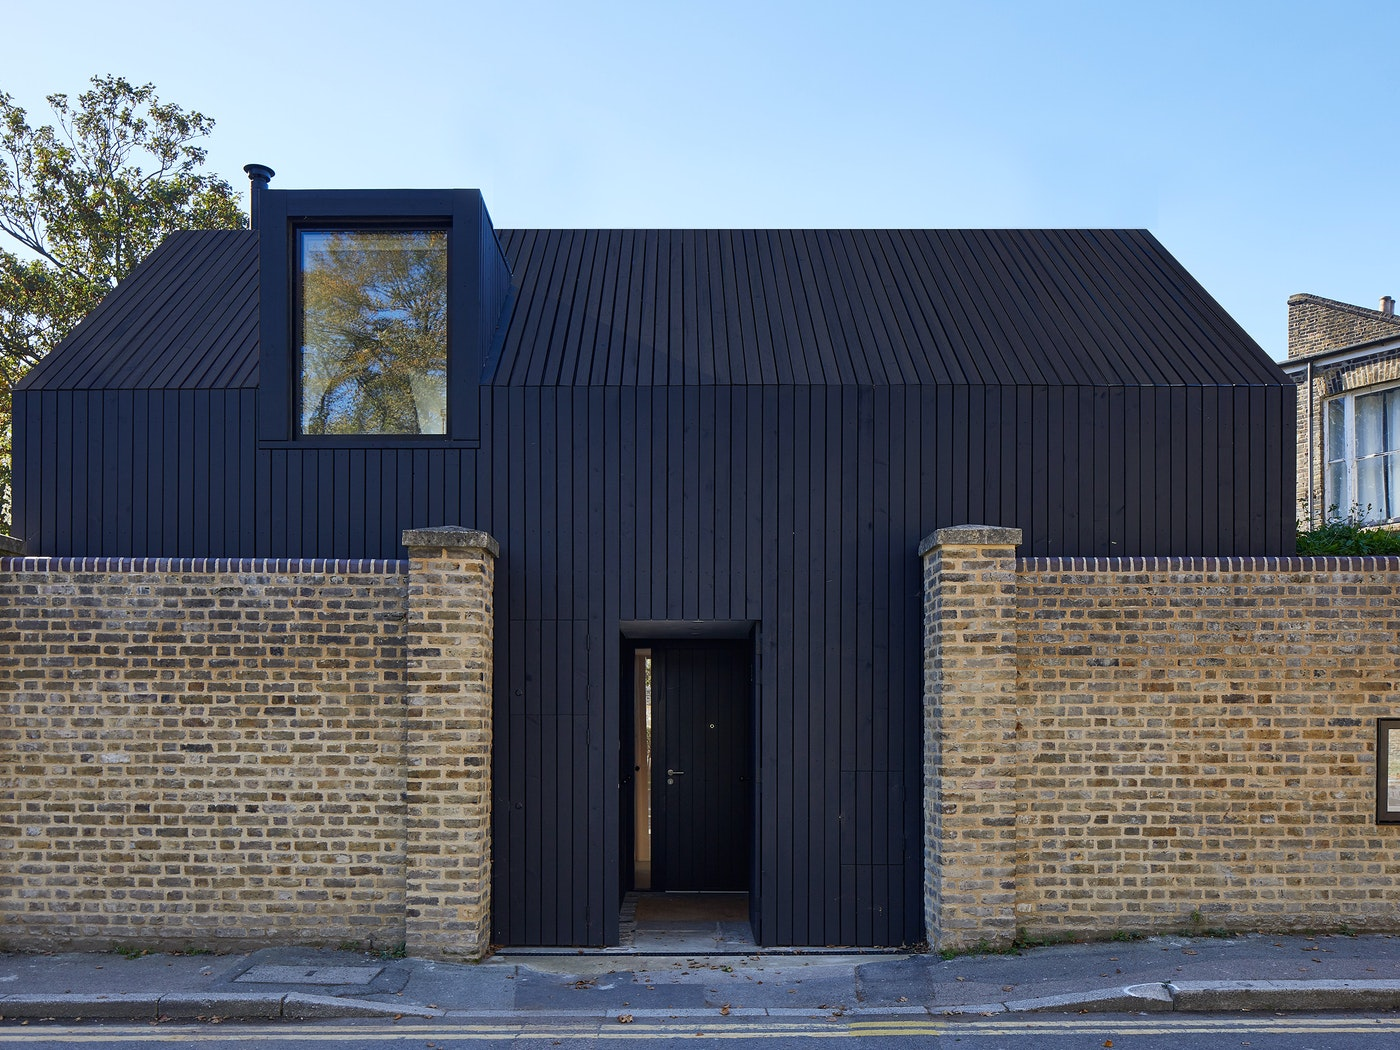 matching cladding to the door